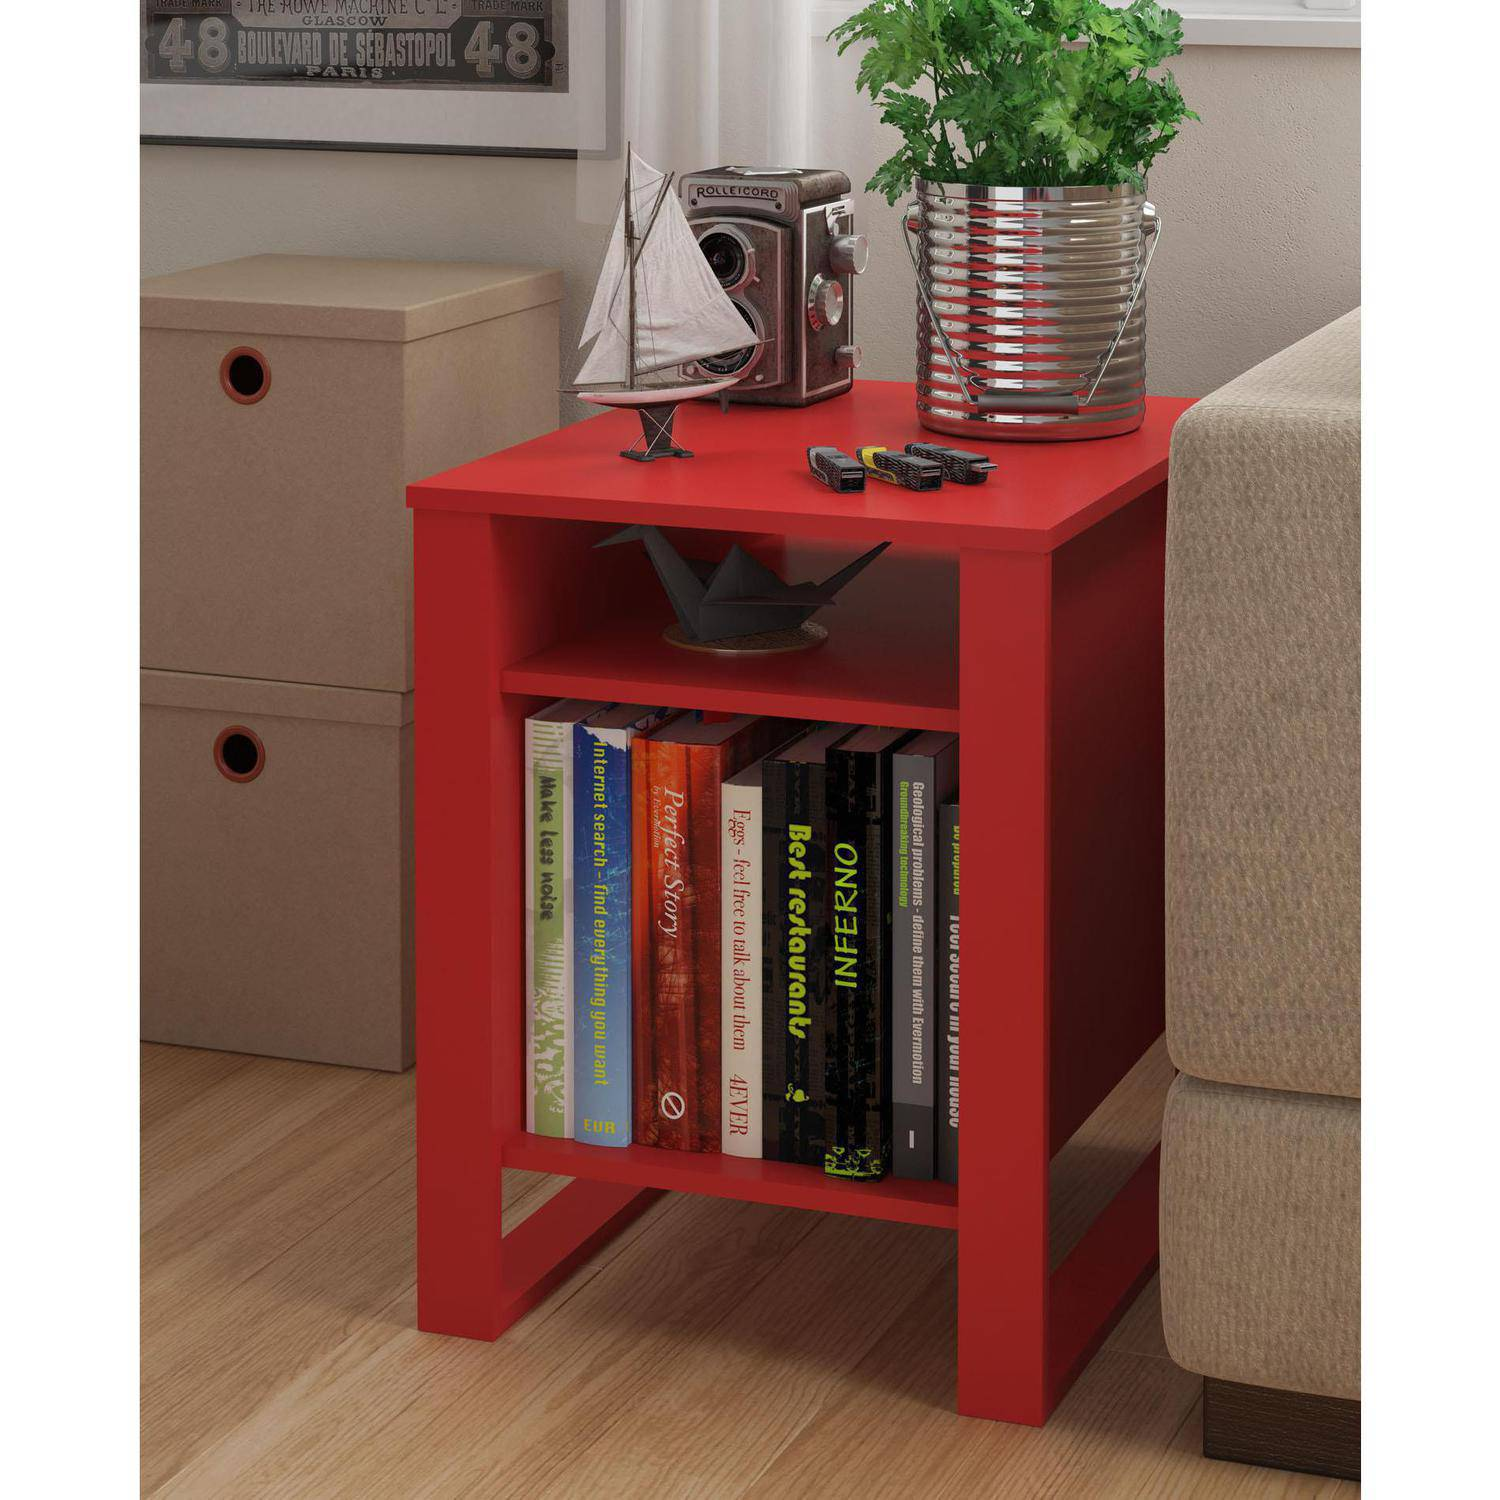 mainstays side table multiple colors red accent wood coastal inspired lamps stein world furniture outdoor white rectangle coffee west elm cushions gray dining room chairs kohls